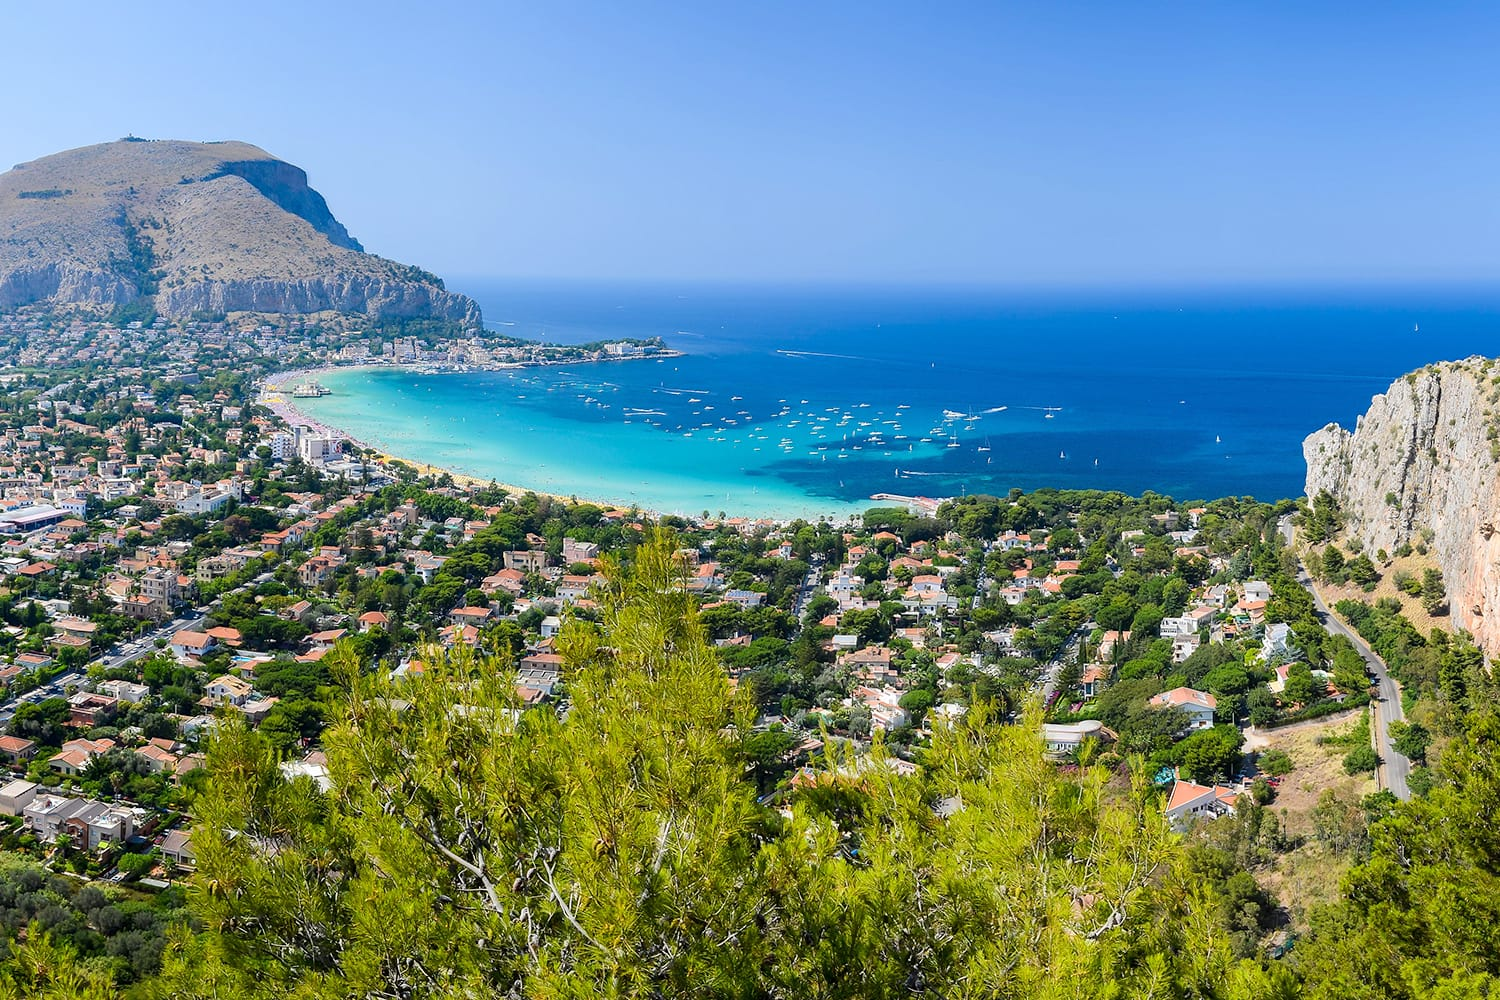 View of the gulf of Mondello from Monte Pellegrino, Palermo, Sicily, Italy.